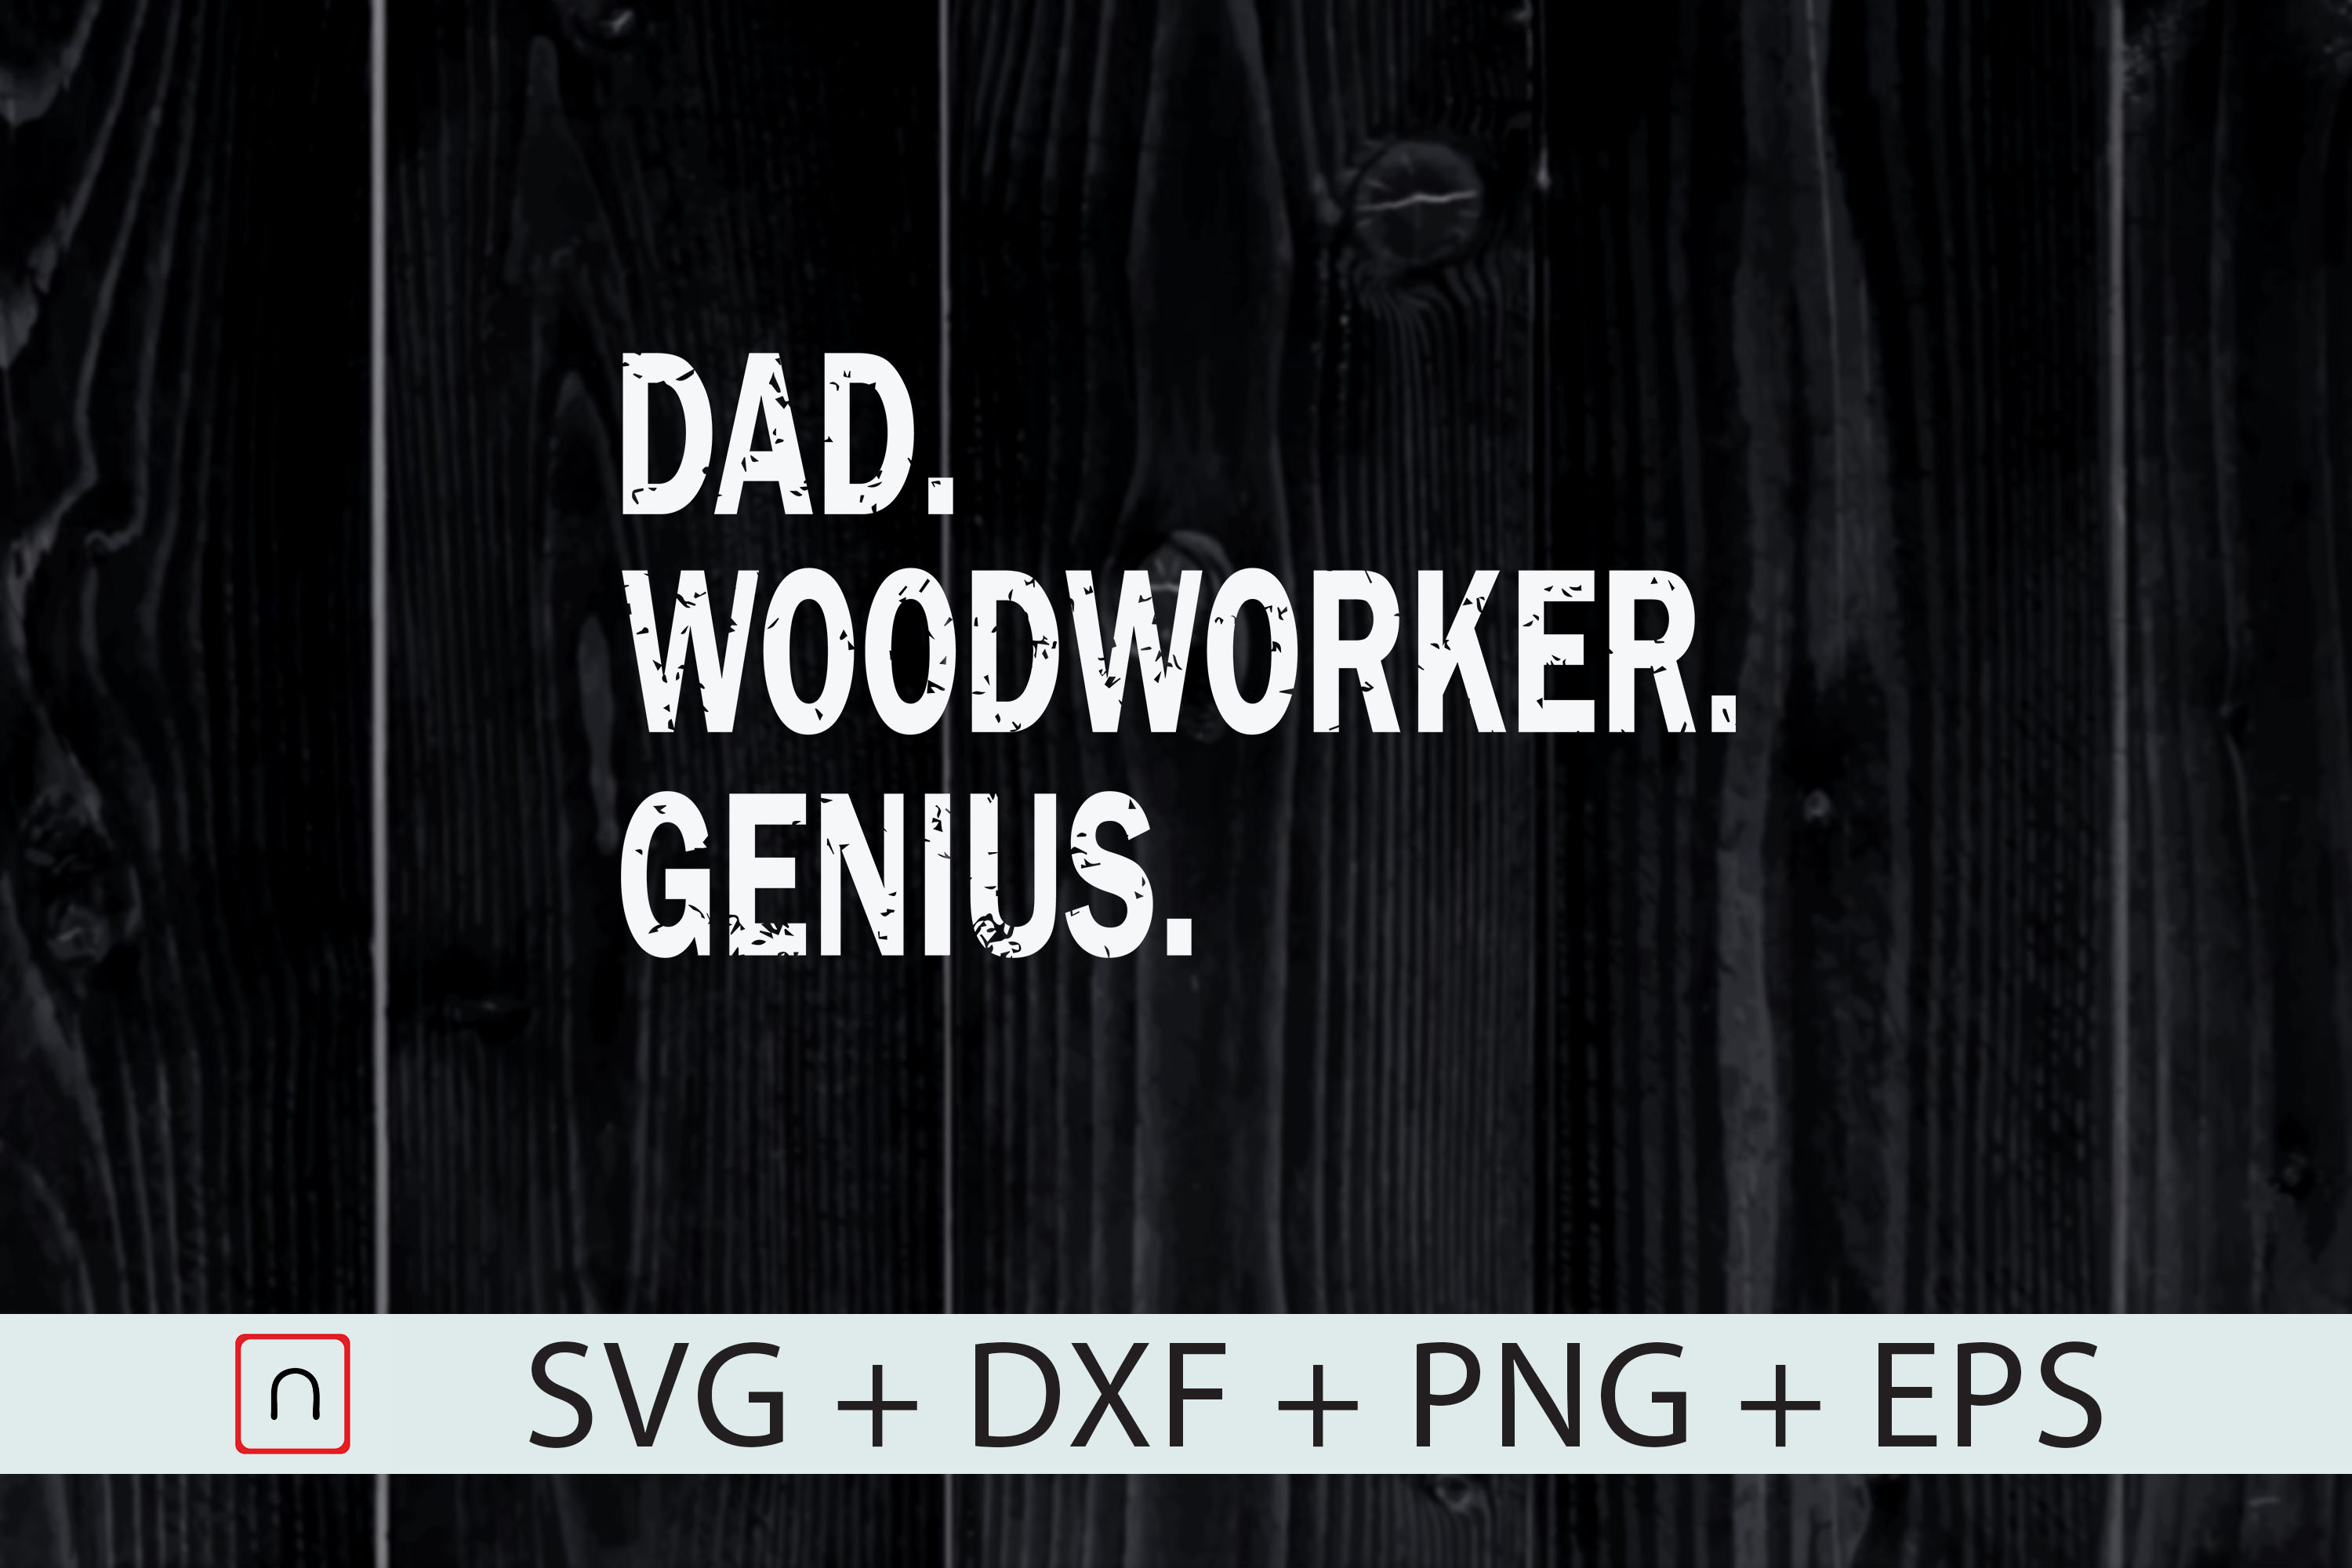 Download Free Dad Woodworker Genius Graphic By Novalia Creative Fabrica for Cricut Explore, Silhouette and other cutting machines.